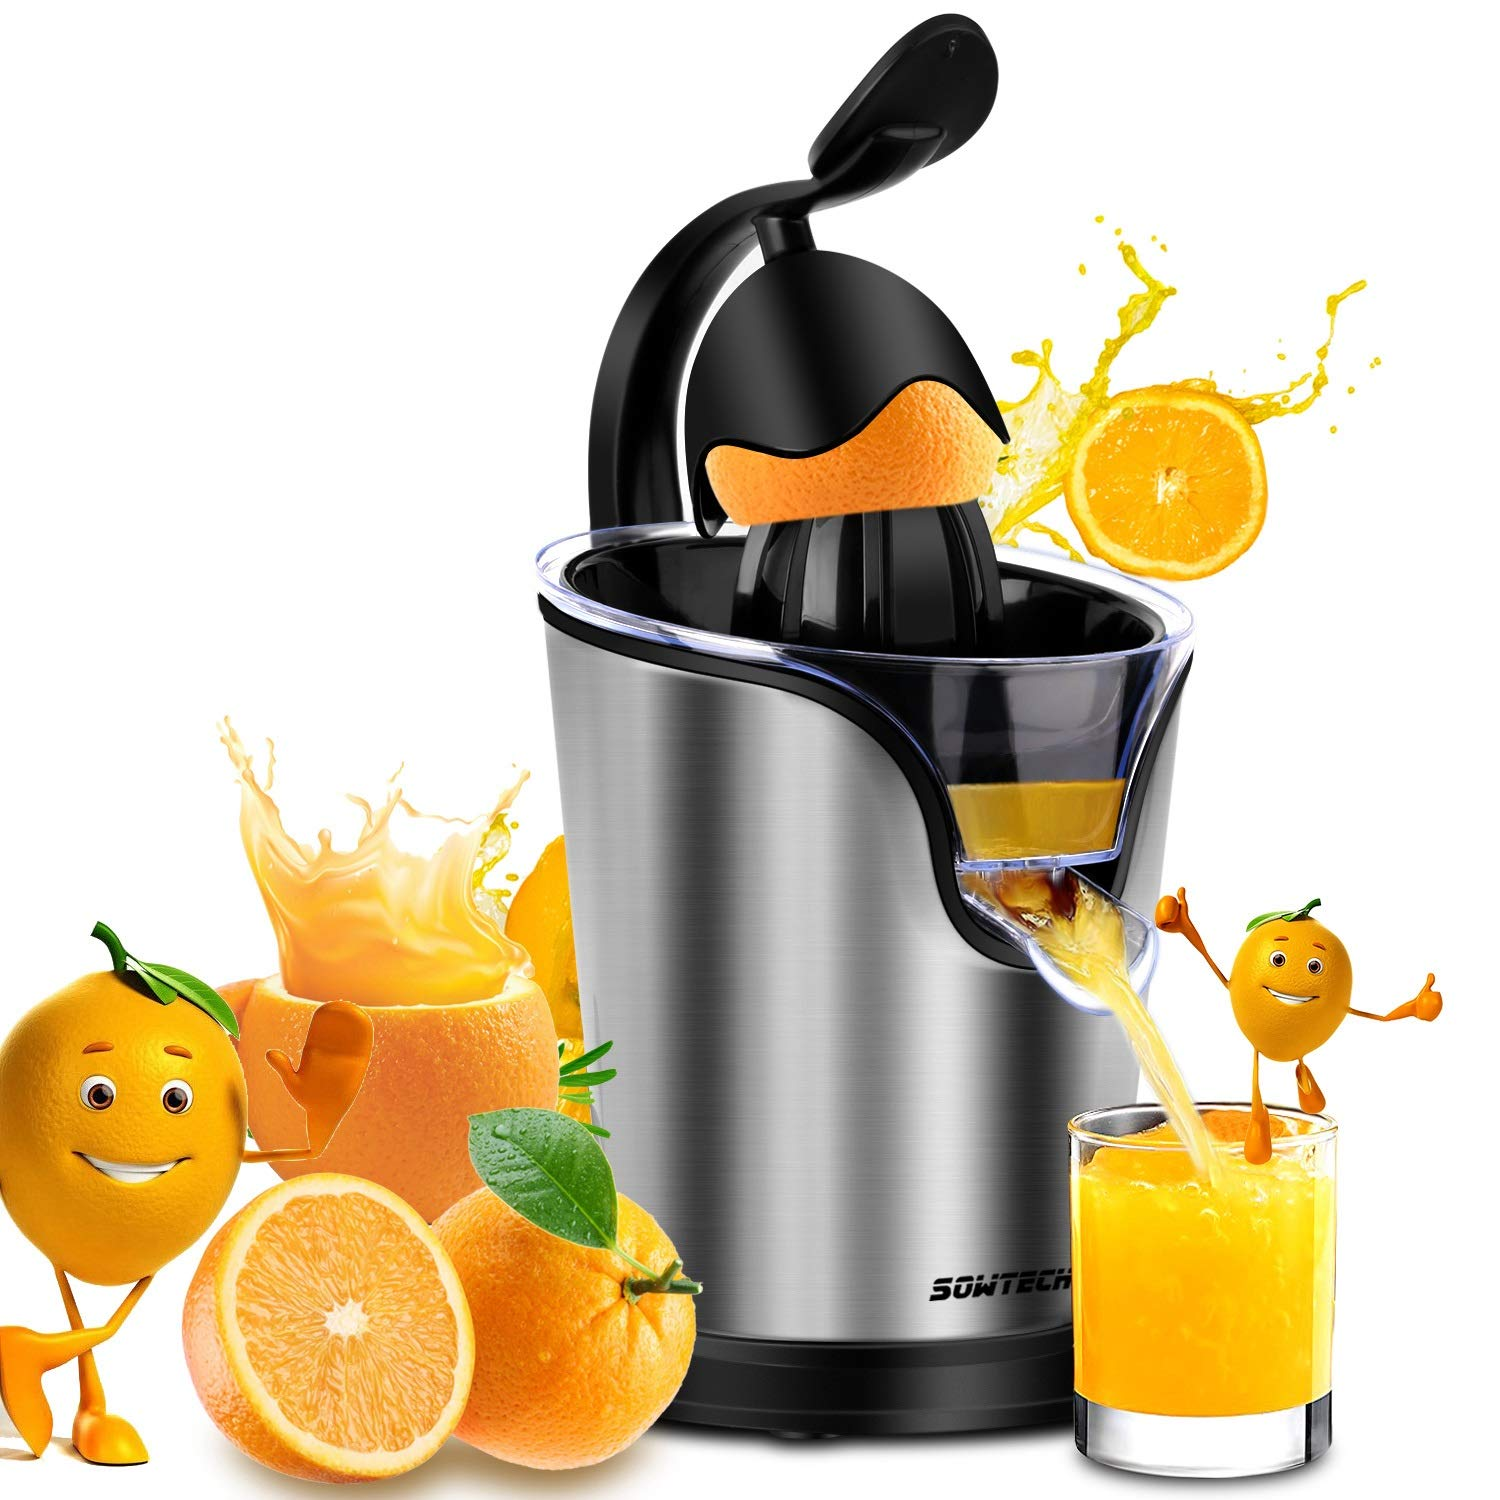 Electric Citrus Juicer Sowtech 2 in 1 Stainless Steel Squeezer Anti-drip Citrus Press for Squeeze Fresh Orange Lemon and Lime ST-HM203